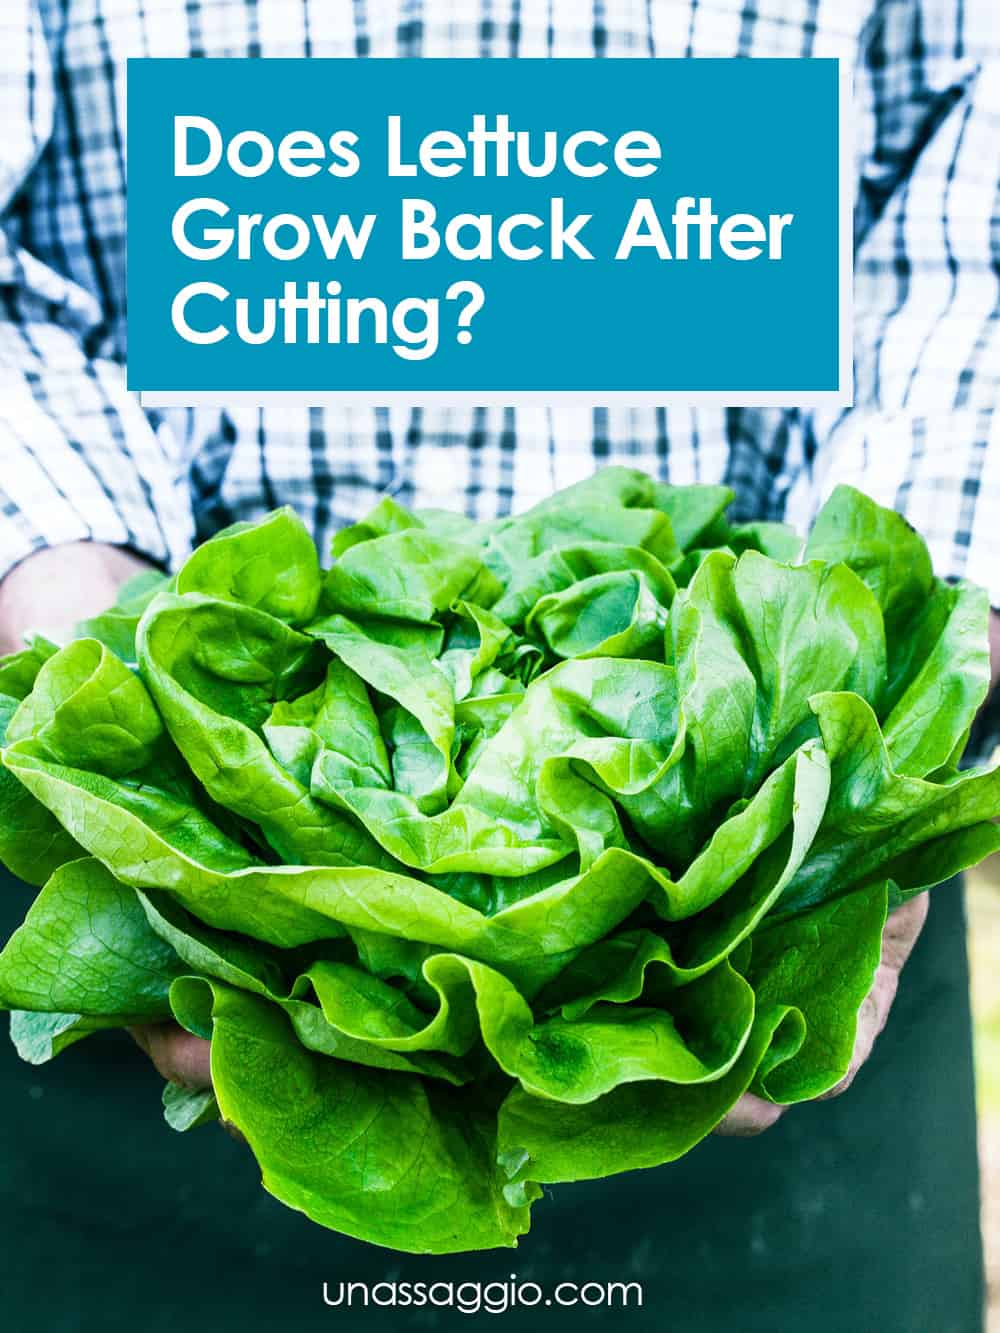 Does Lettuce Grow Back After Cutting?